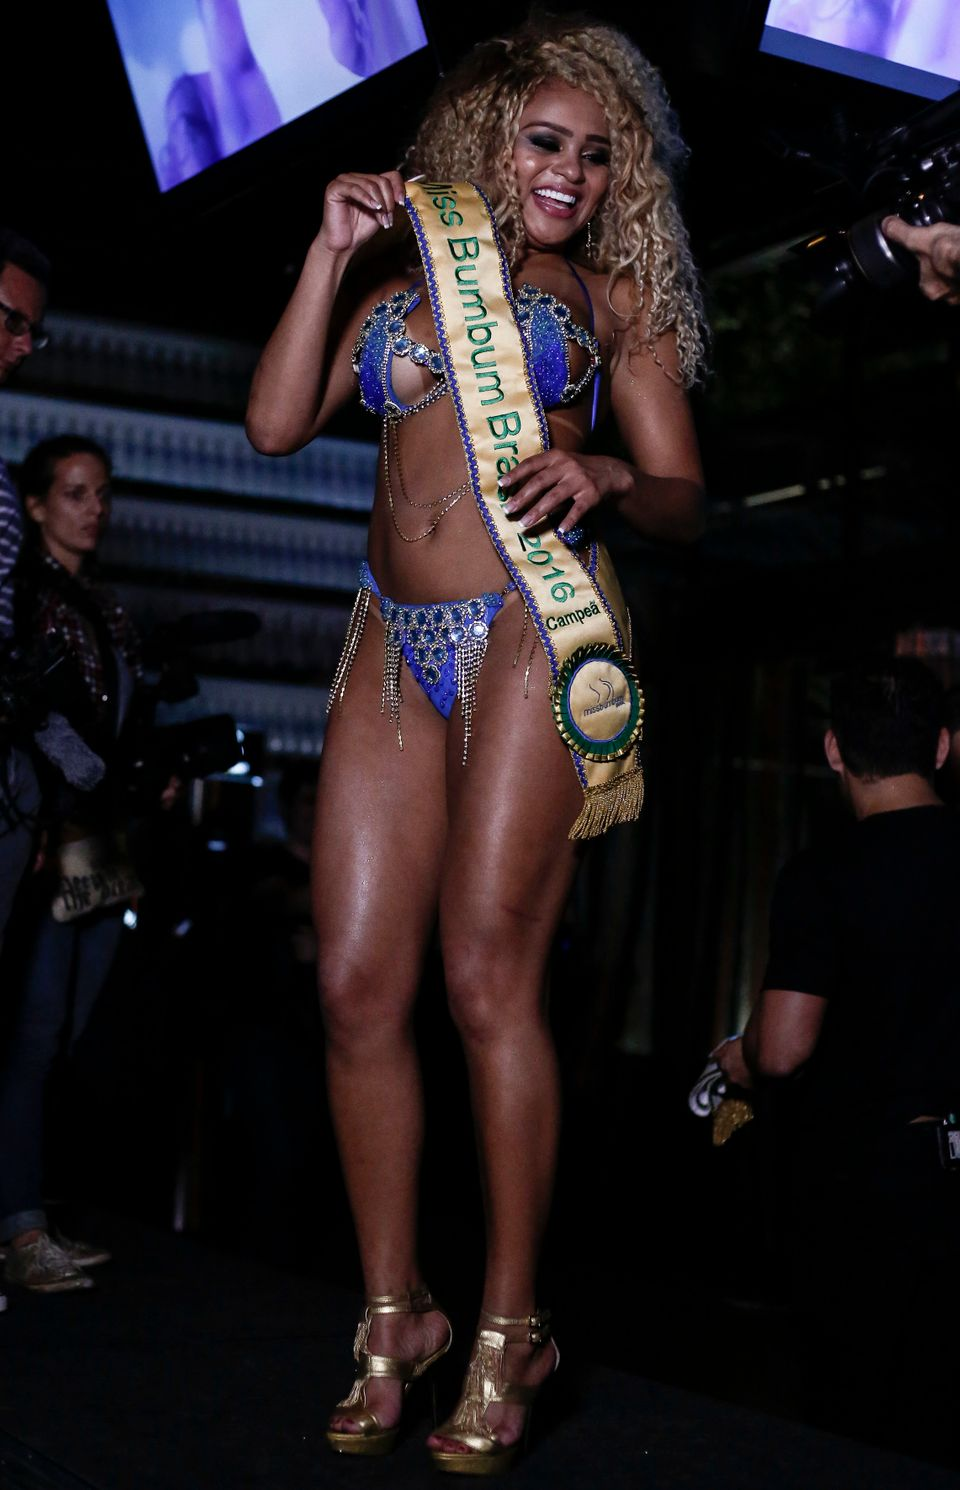 Erika Canela from Bahia smiles after winning the Miss Bumbum Brazil 2015 pageant in Sao Paulo, Brazil on November 9, 2016.  F